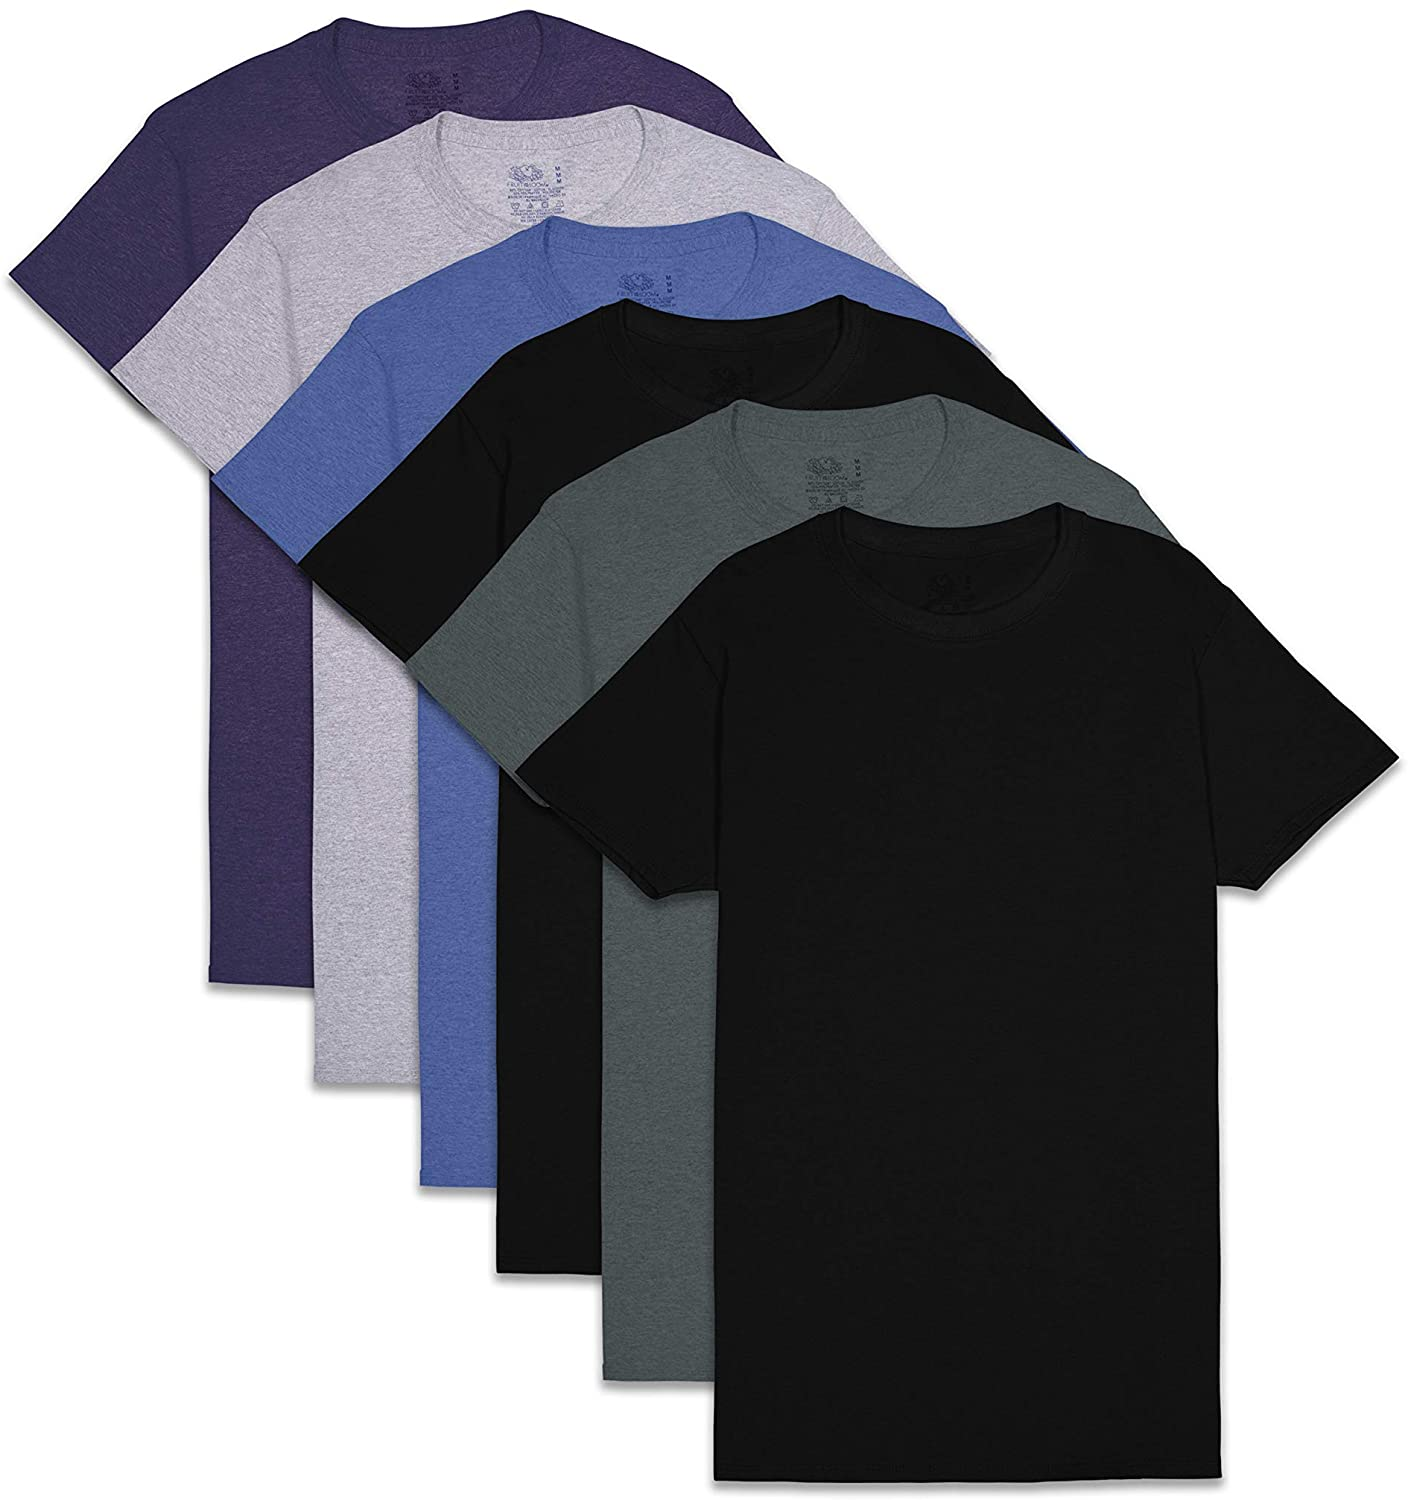 Fruit of the Loom Men's Stay Tucked Crew T-Shirt variety pack; best undershirts for men